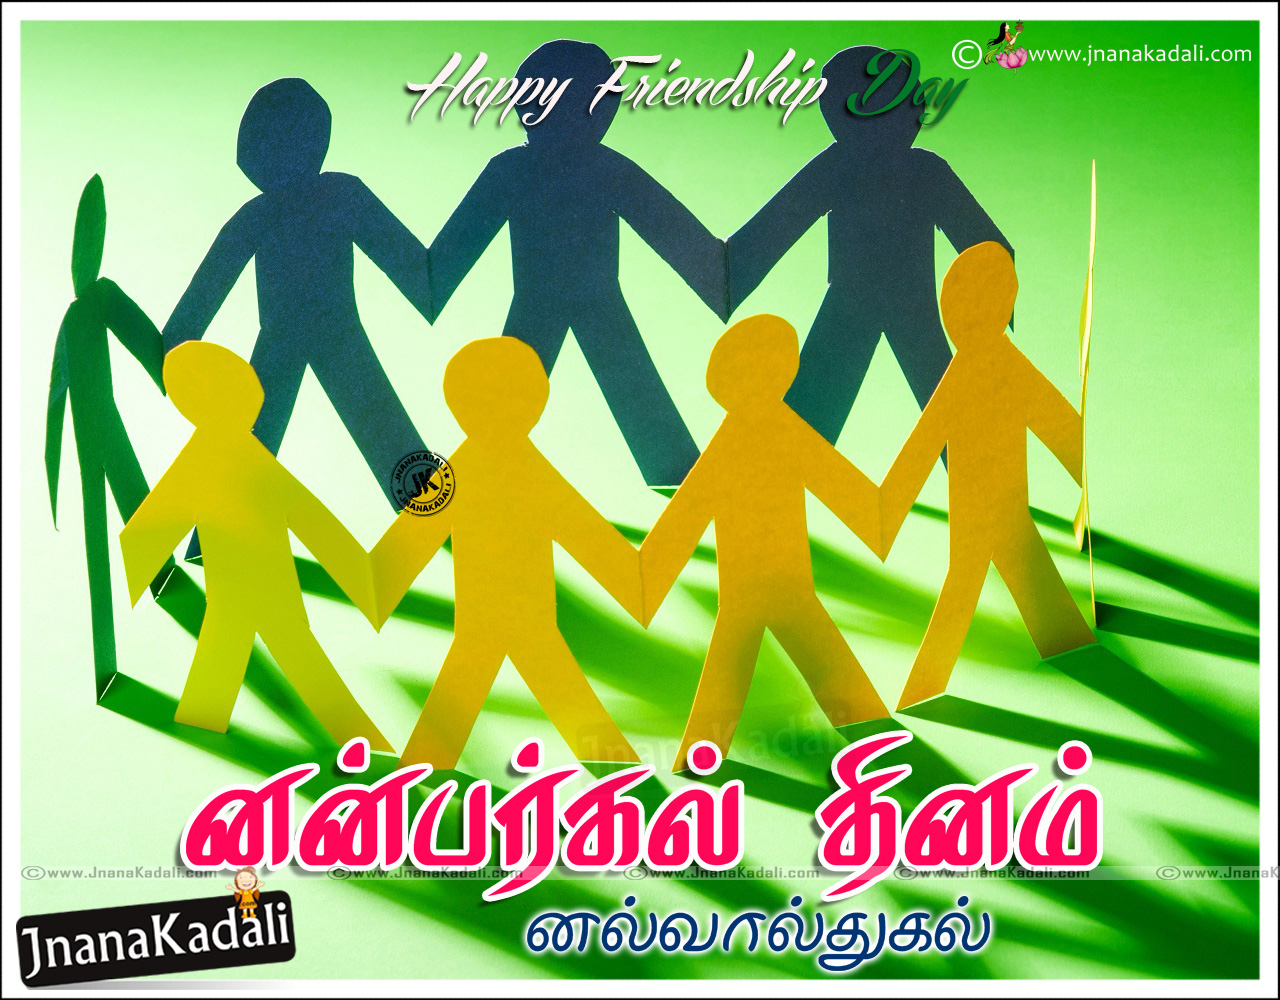 Nice Quotes About Friendship Cute Tamil Whatsapp Friendship Day Greetings And Quotes Status Sms